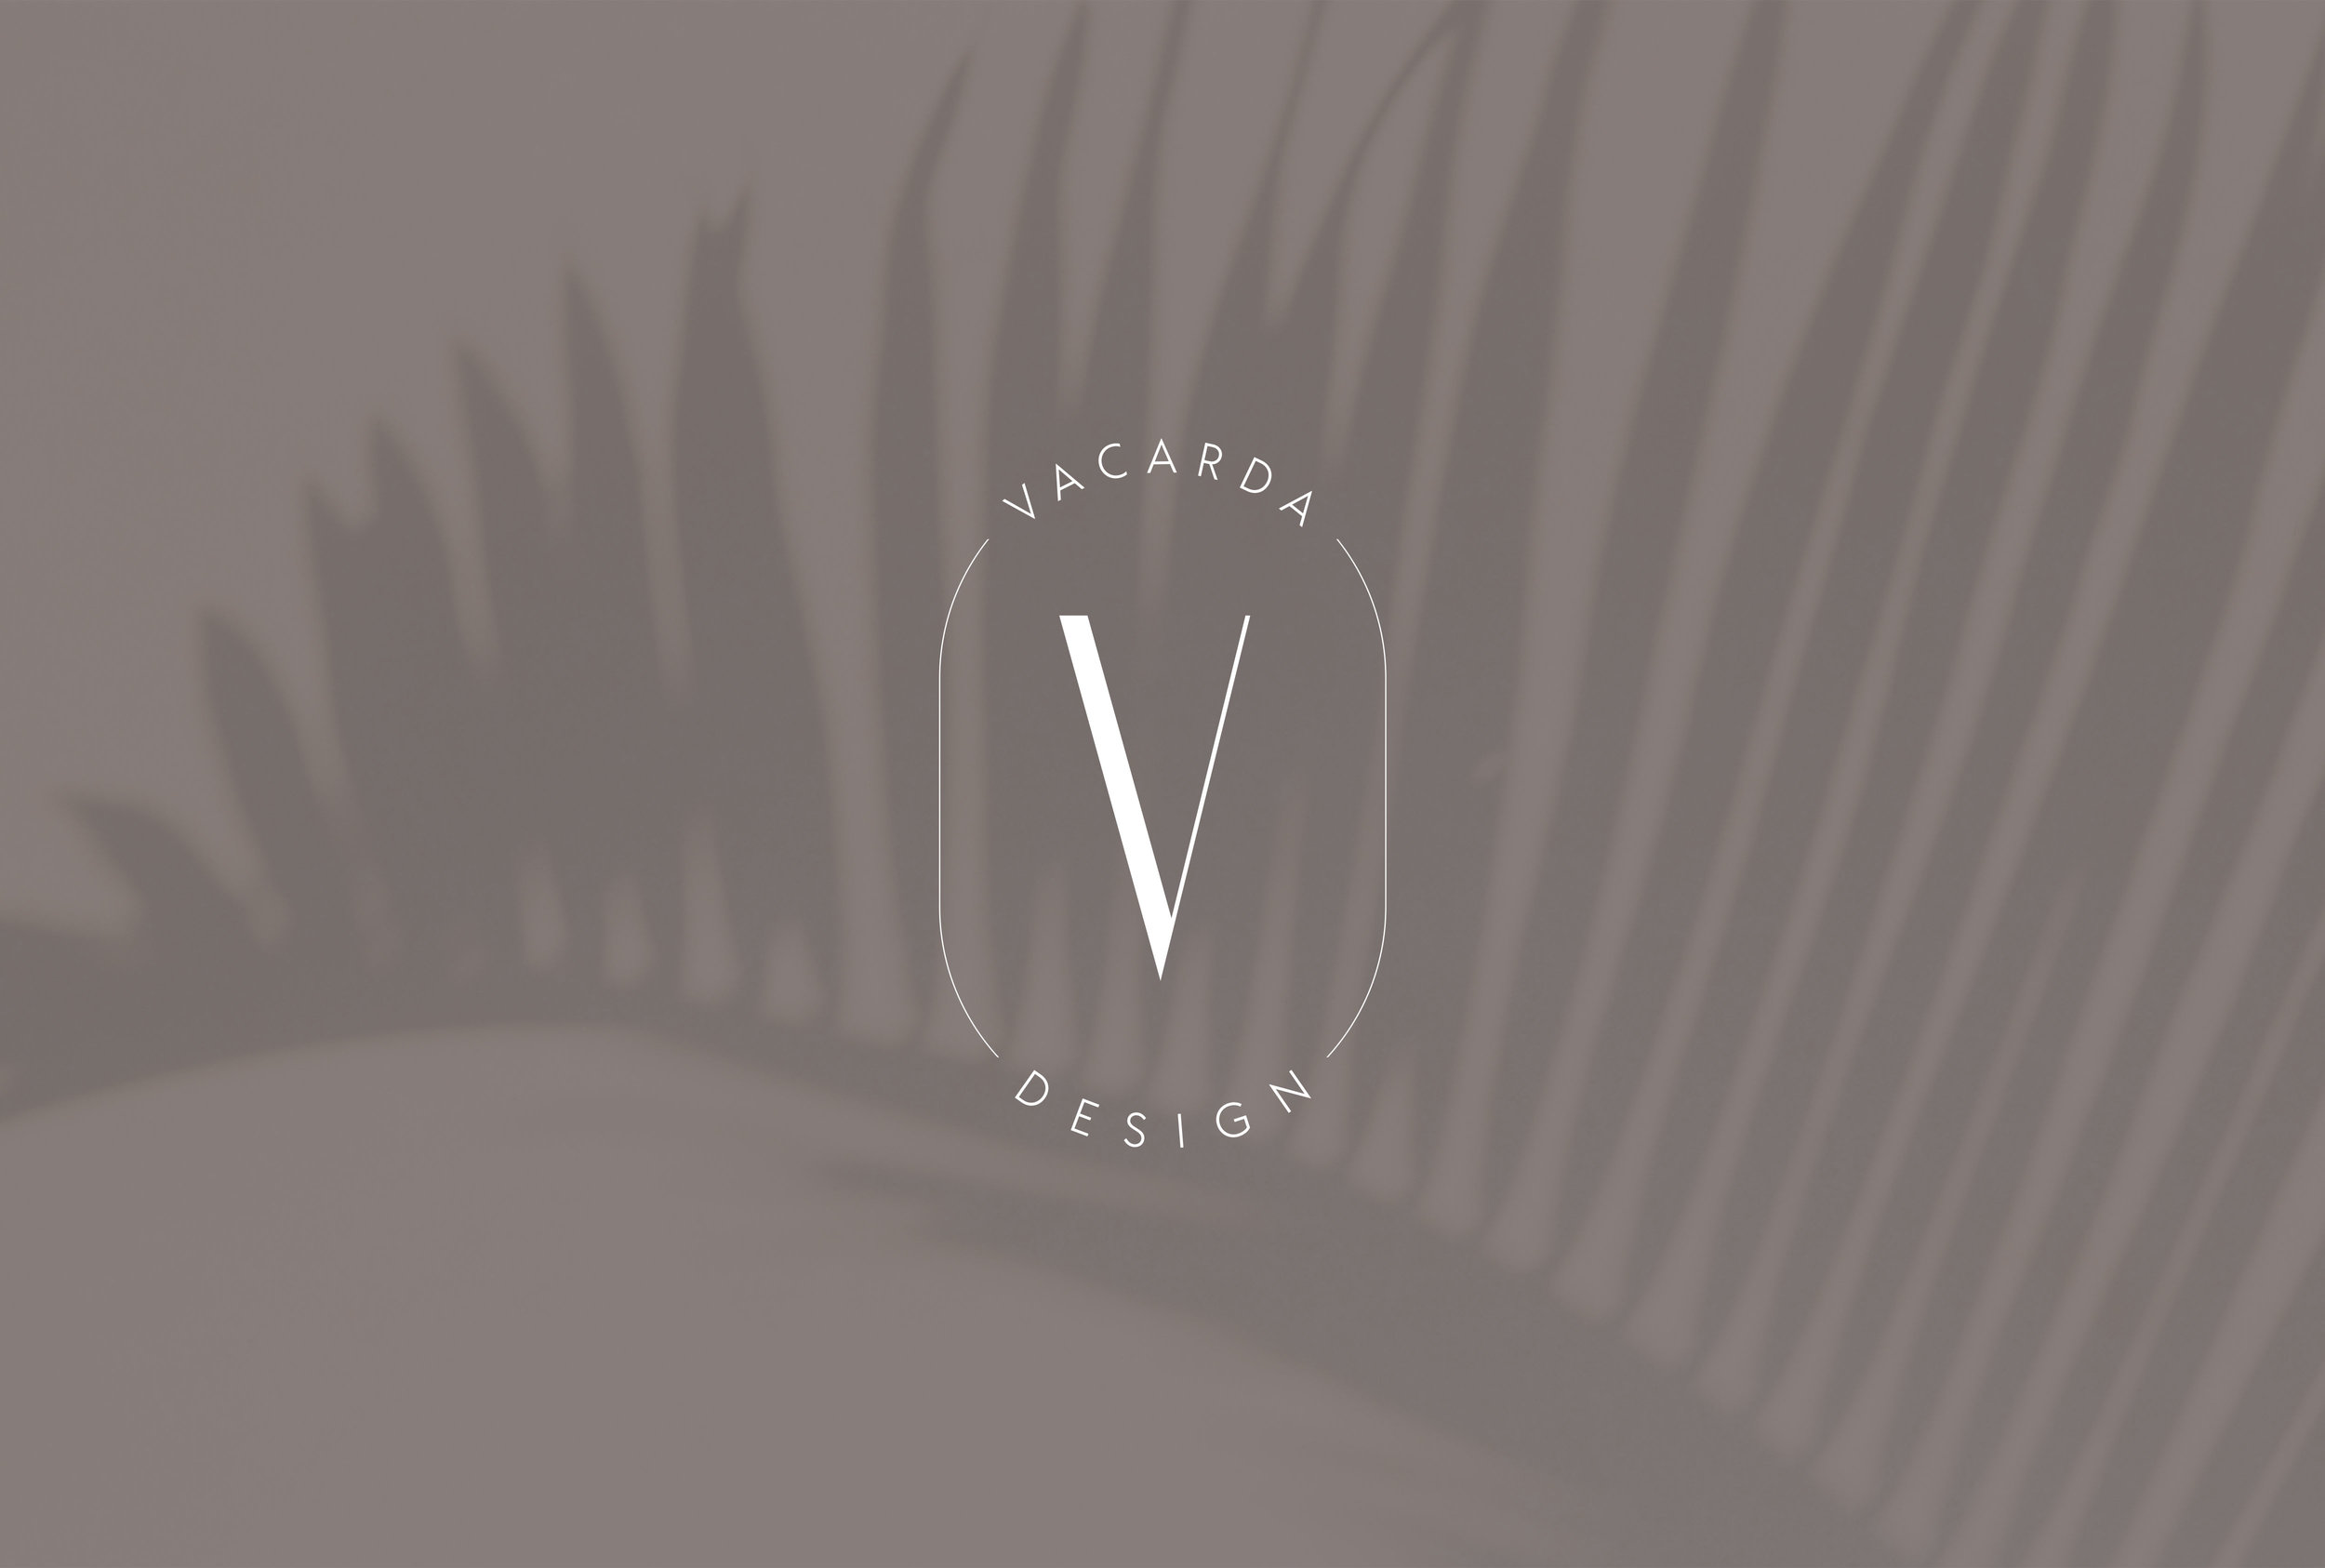 Vacarda-Design-Logo-Branding-Lola-Design-Company-Freelance-Graphic-Designer-London-Alternative-Logo.jpg